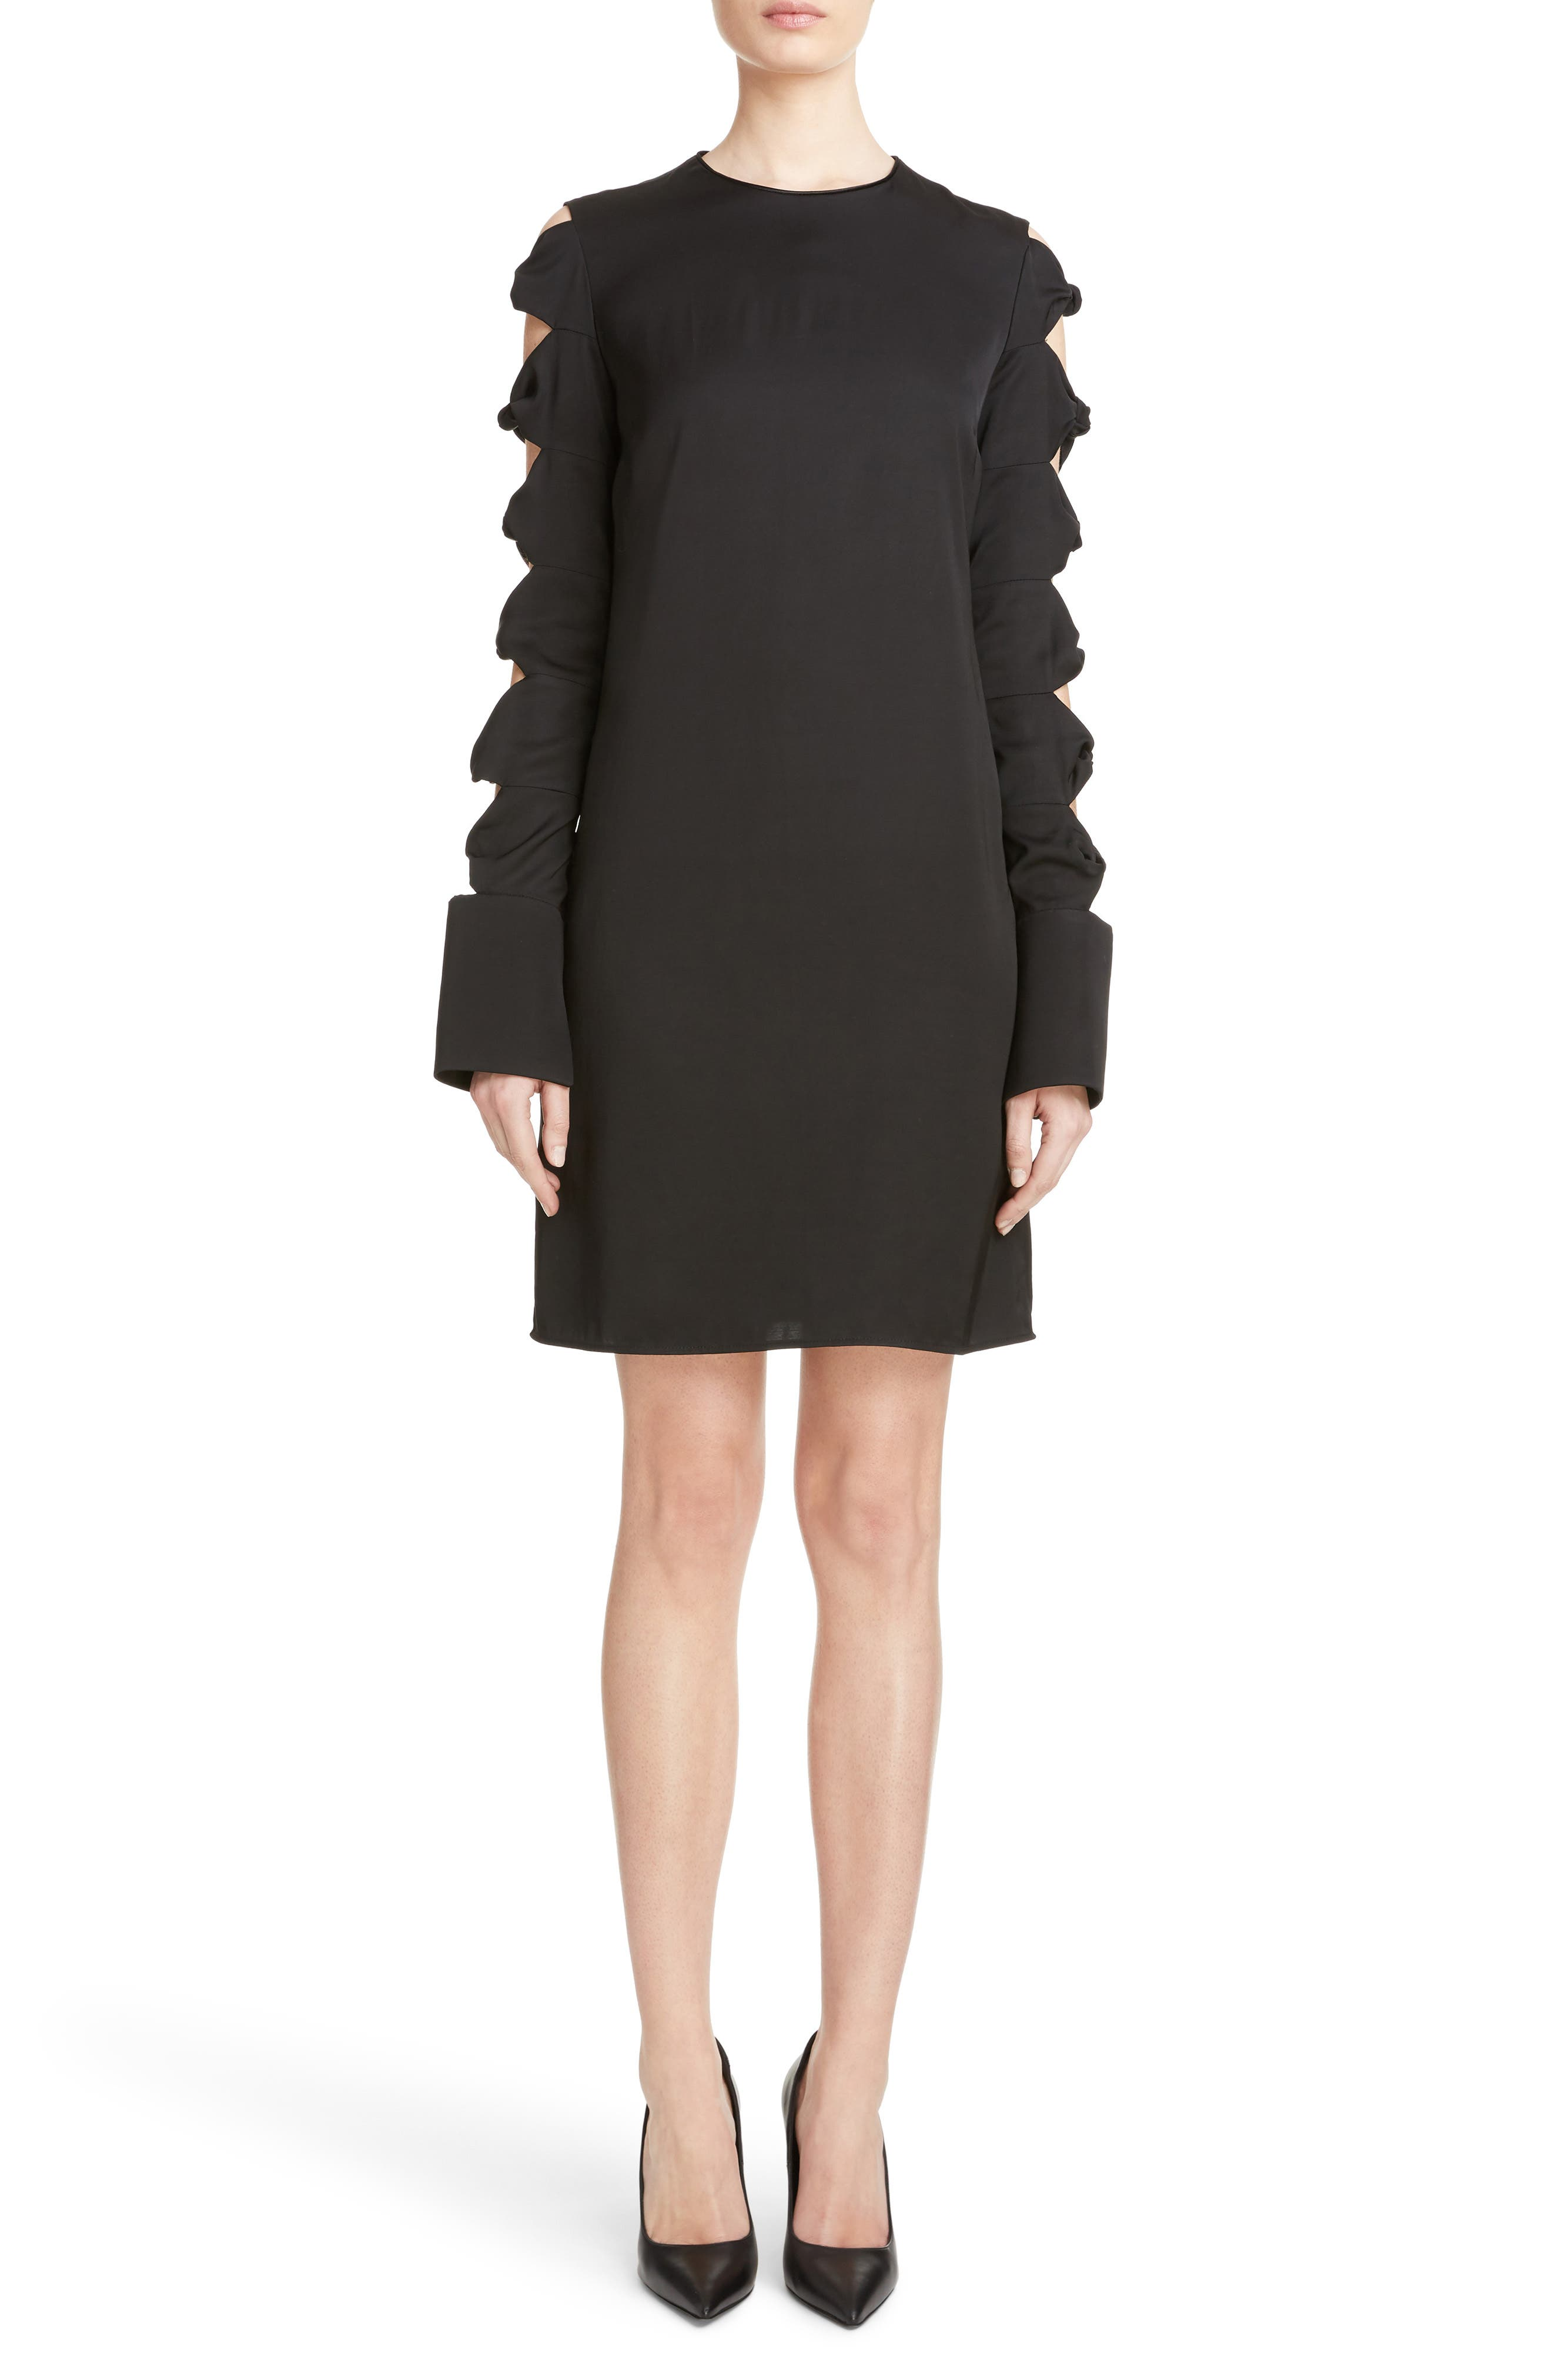 Knotted Sleeve Dress,                         Main,                         color, Black